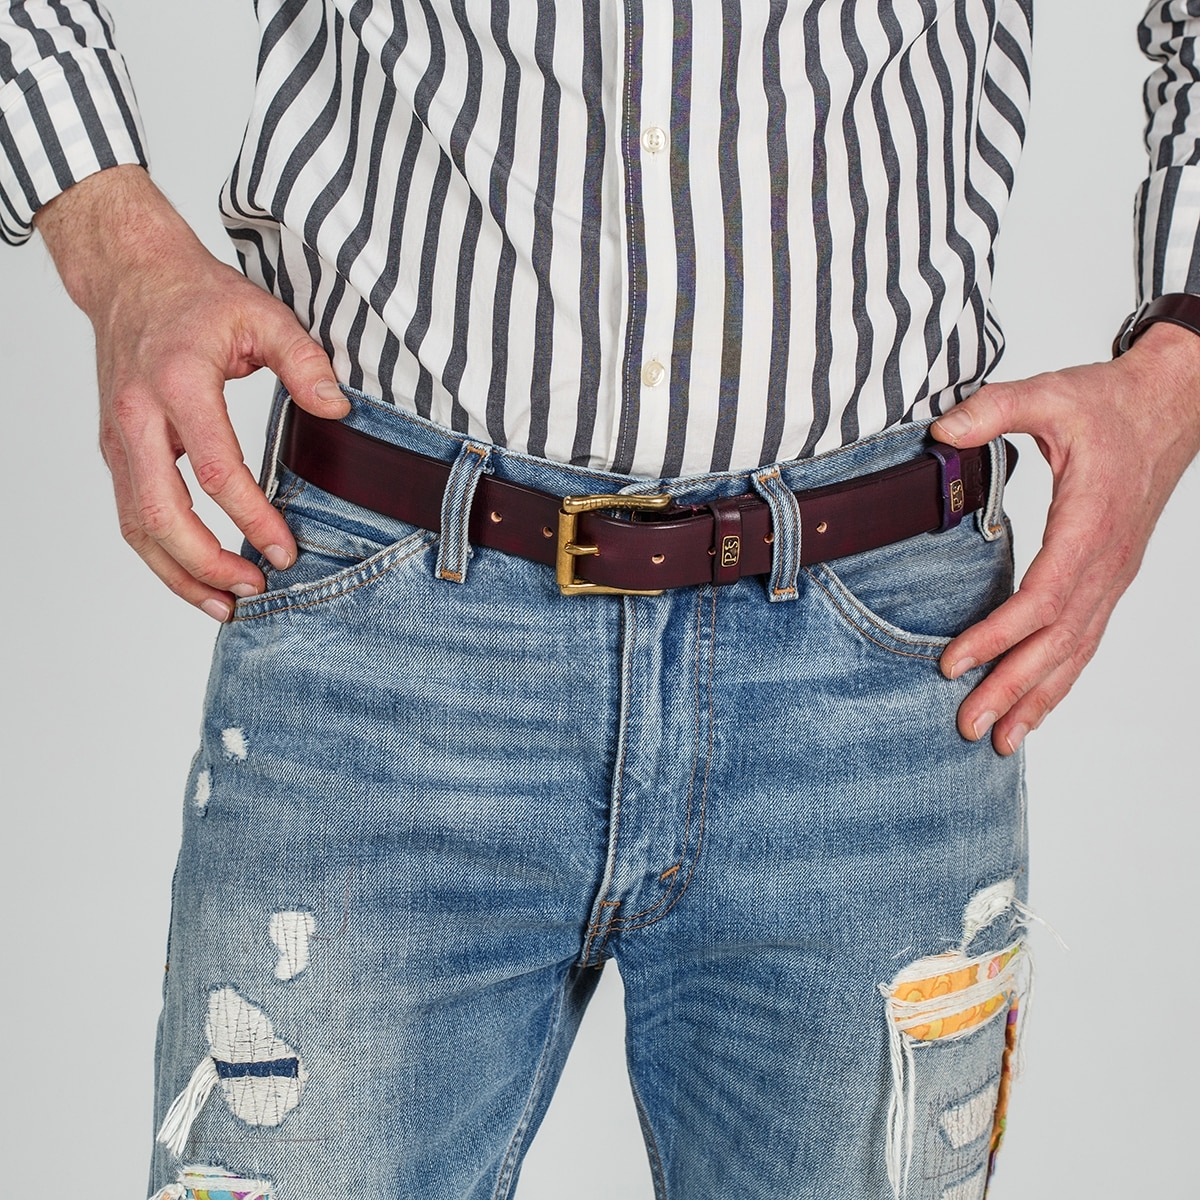 32mm traditional belt for jeans bordeaux